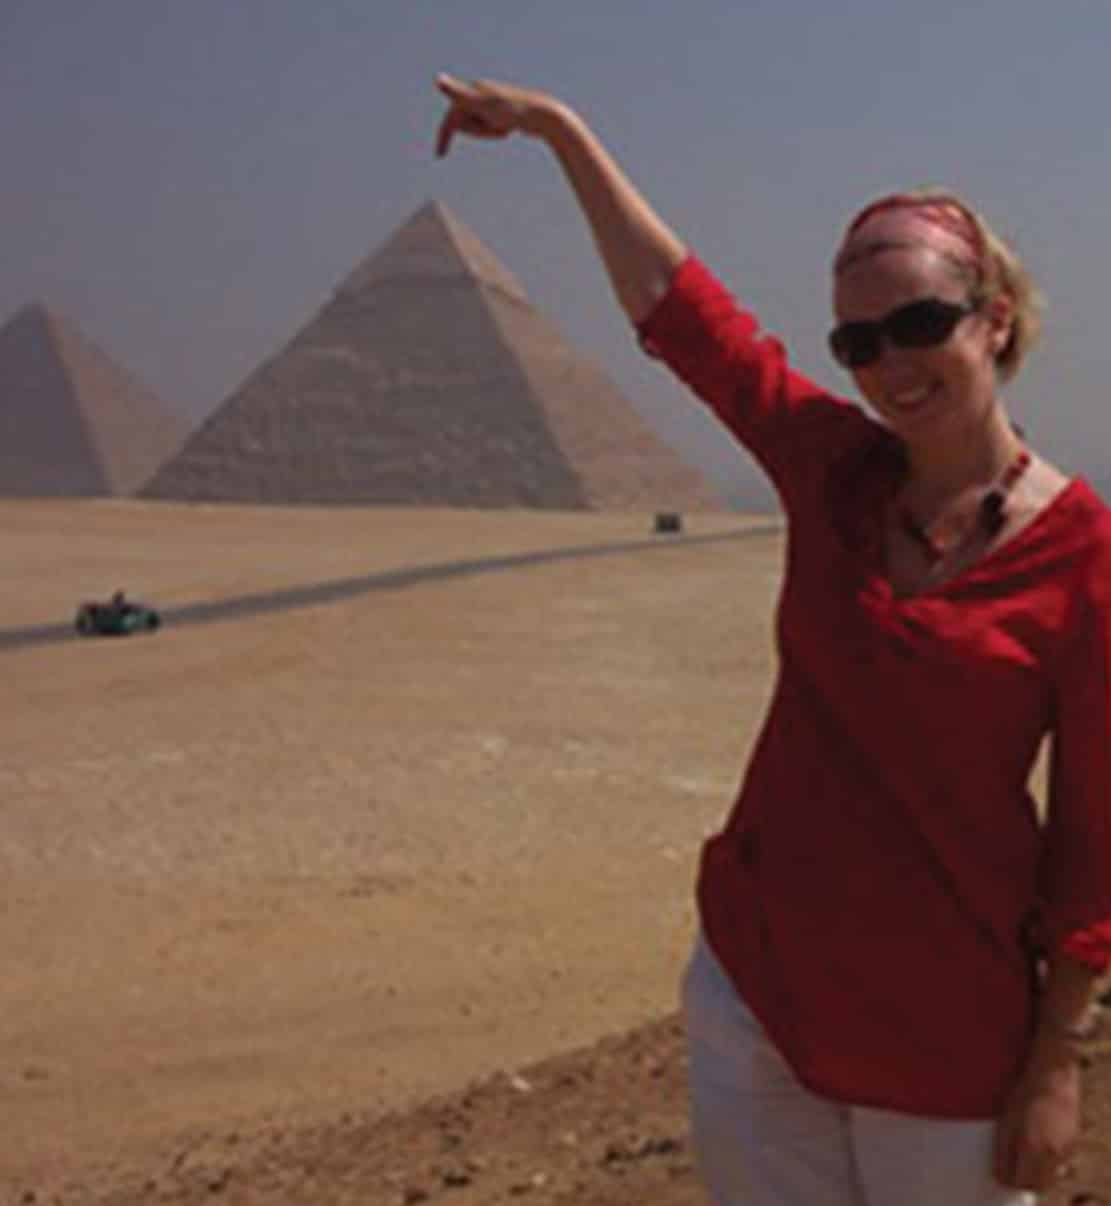 Bernadette Bruggeman – Solo Travel Consultant at Two's a Crowd